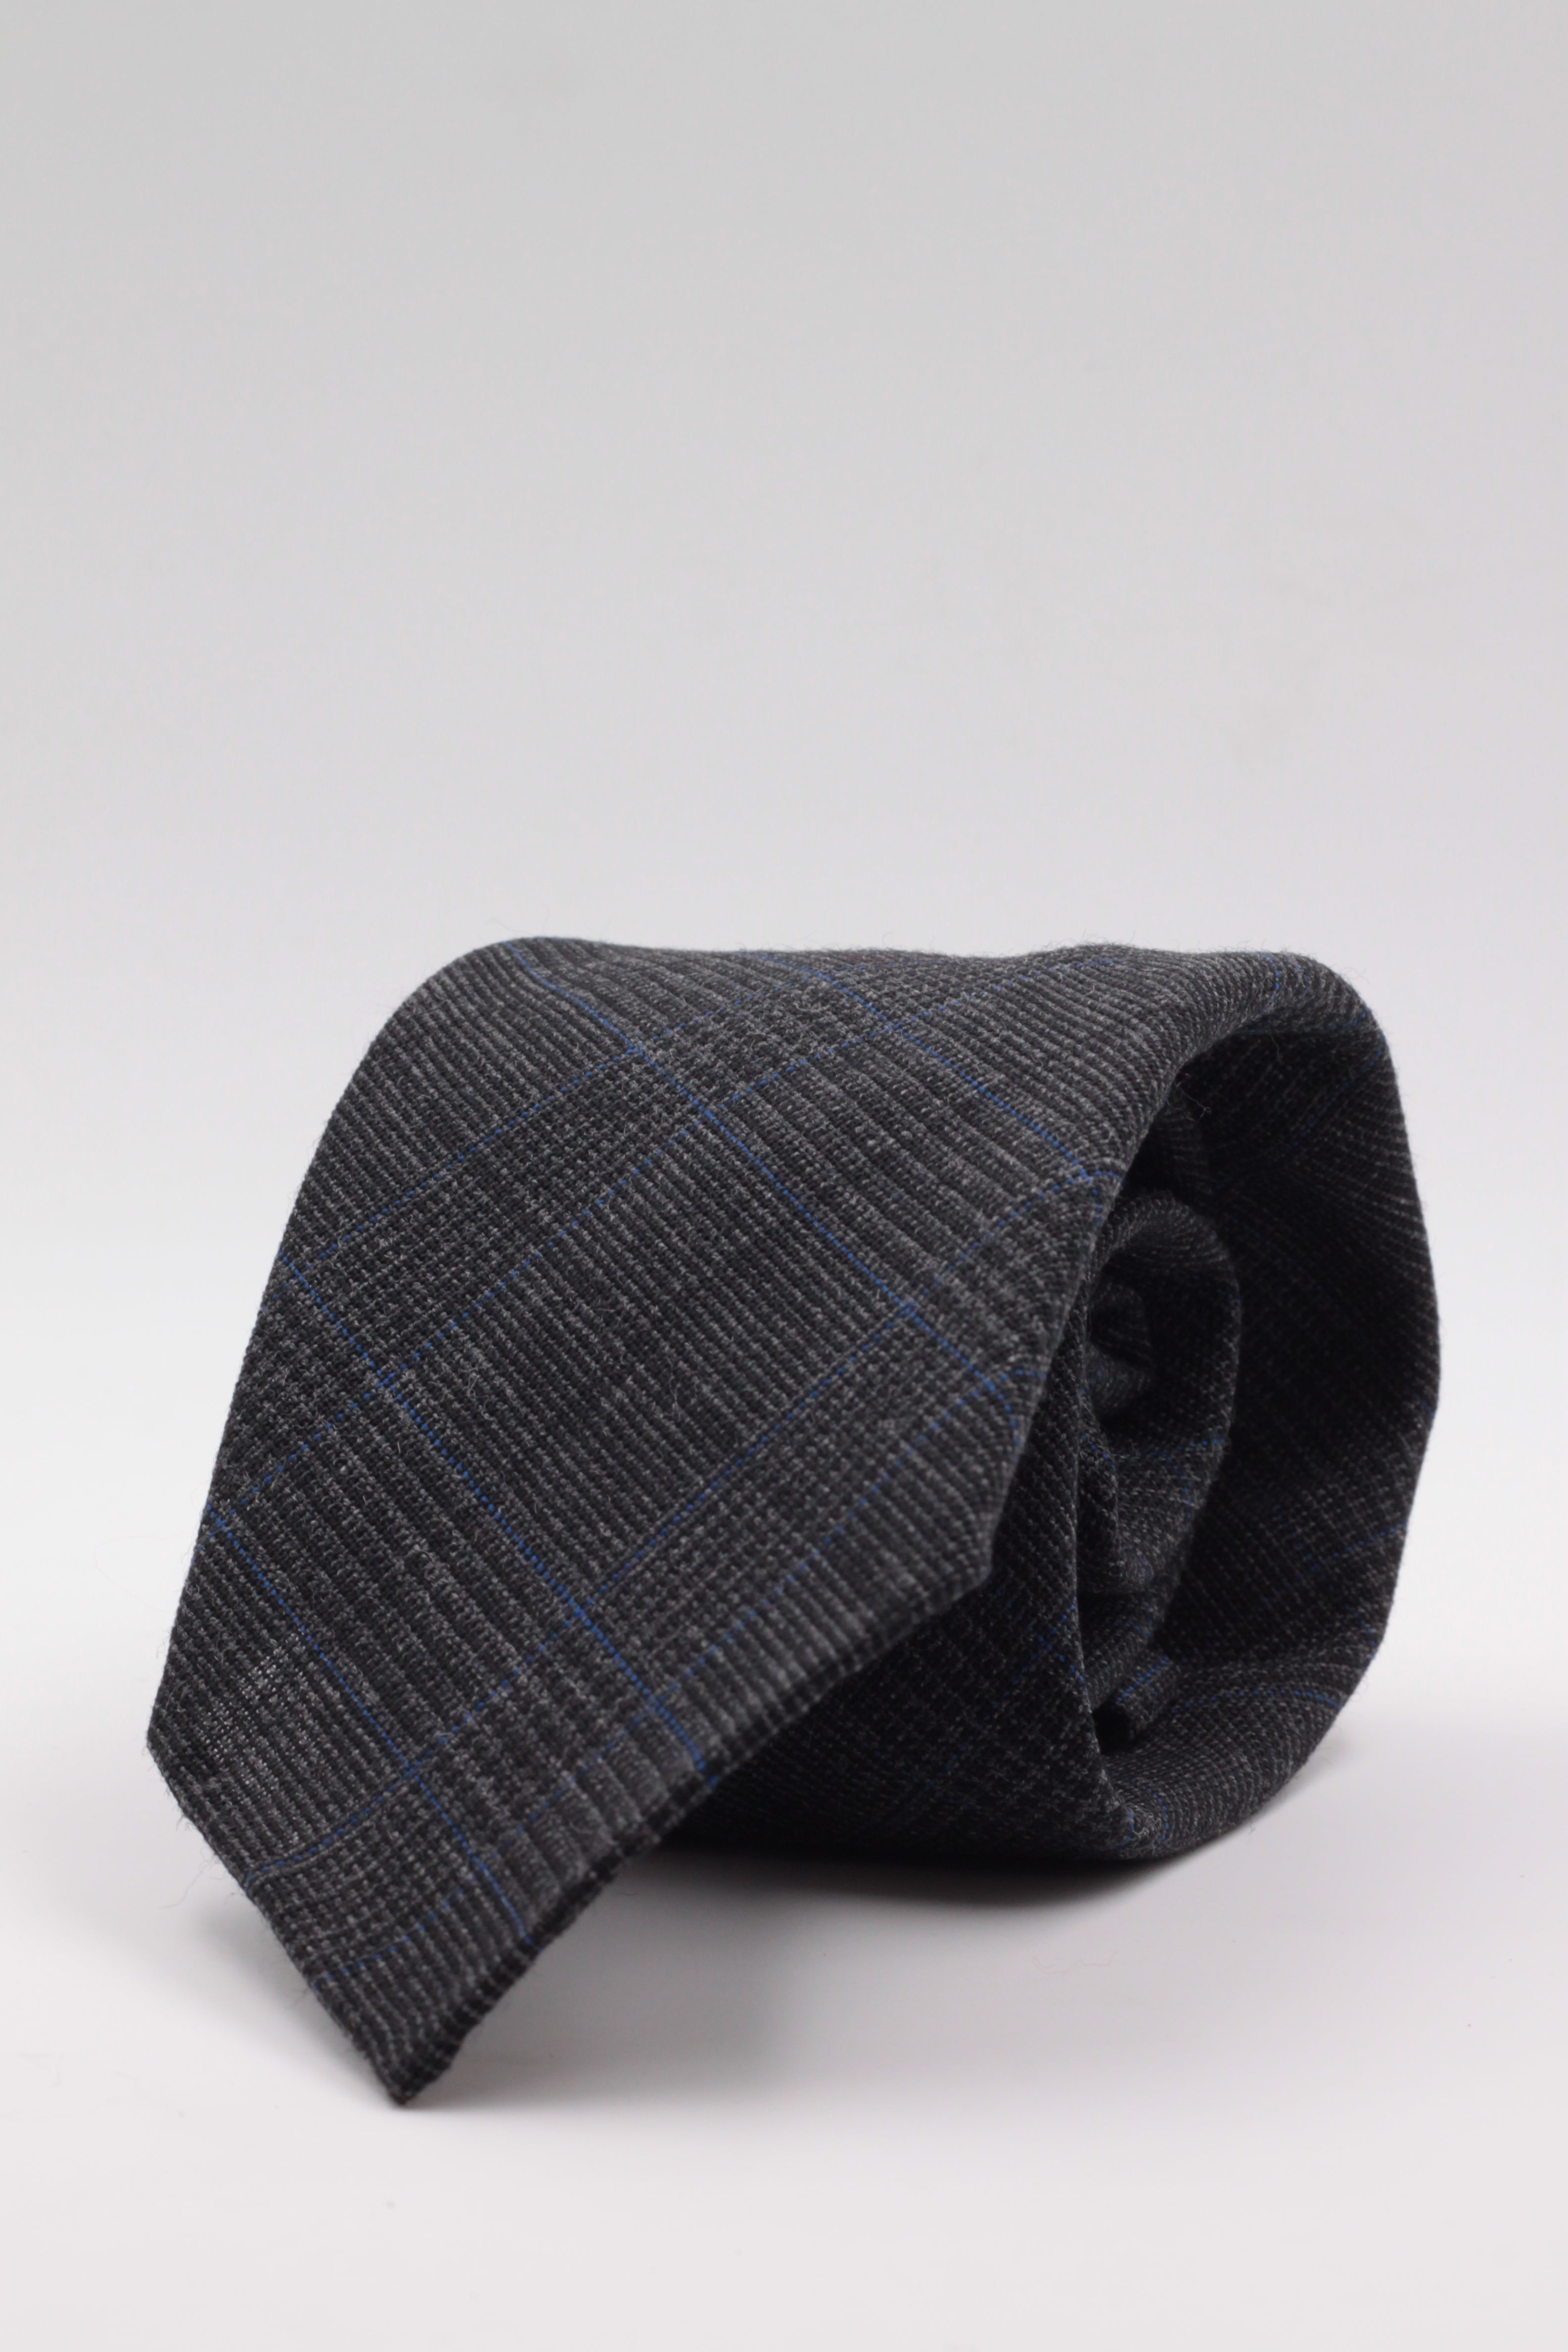 100% Woven Wool Fresco Unlined Hand rolled blades Dark grey and royal blue prince of Wales pattern tie Handmade in Rome, Italy 8 cm x 150 cm